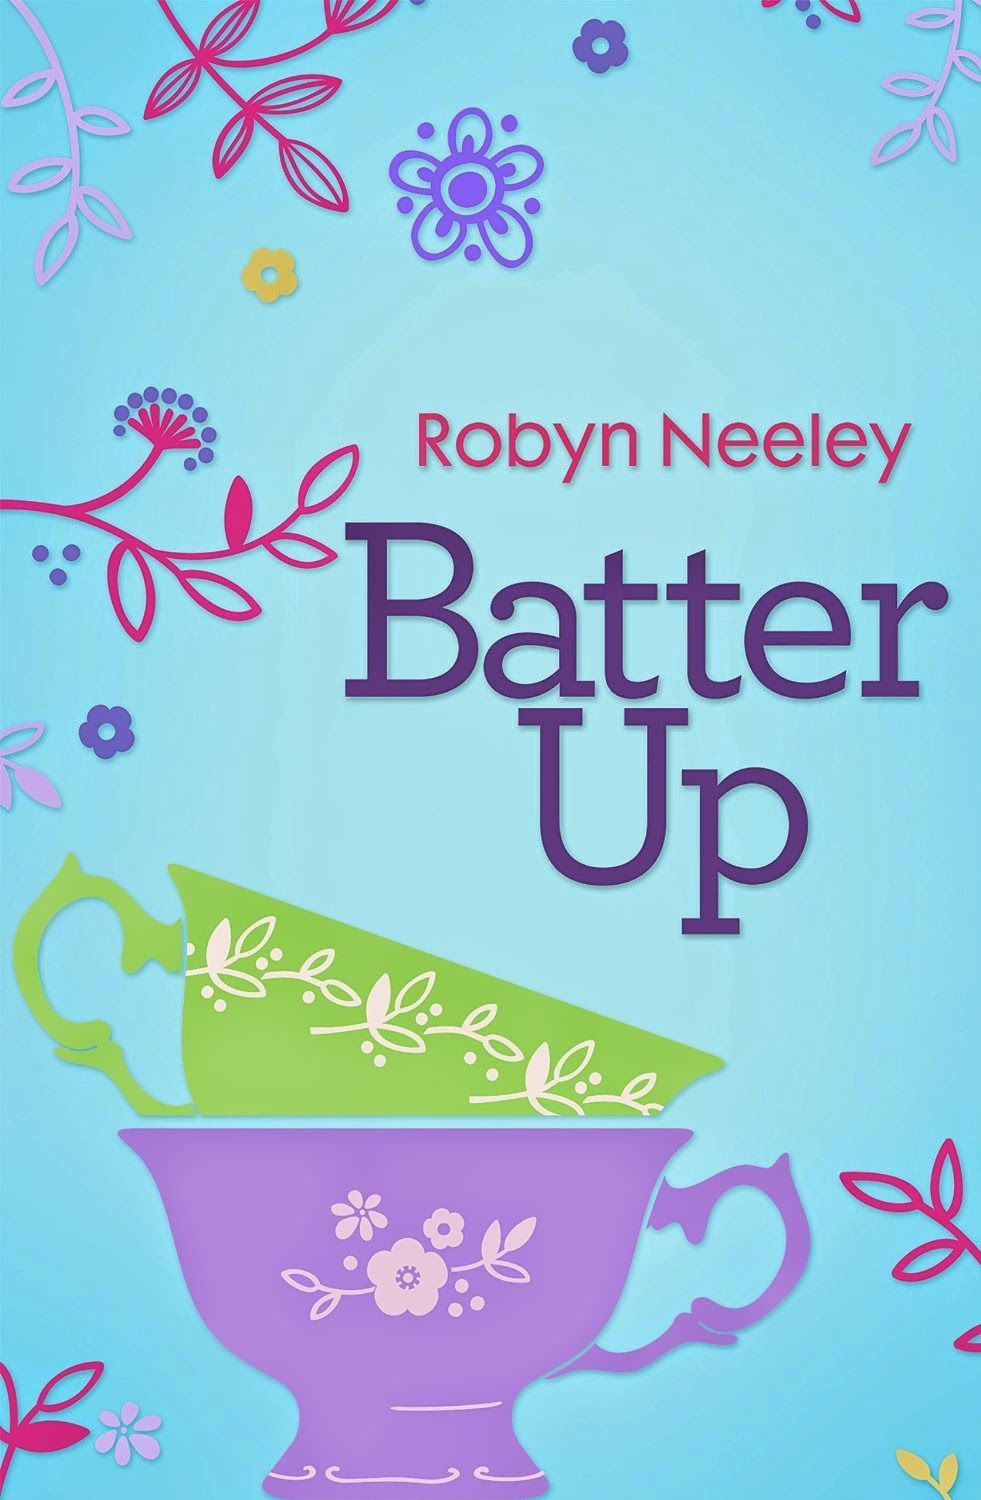 Lavender likes, loves, finds and dreams: Batter Up by Robyn Neeley